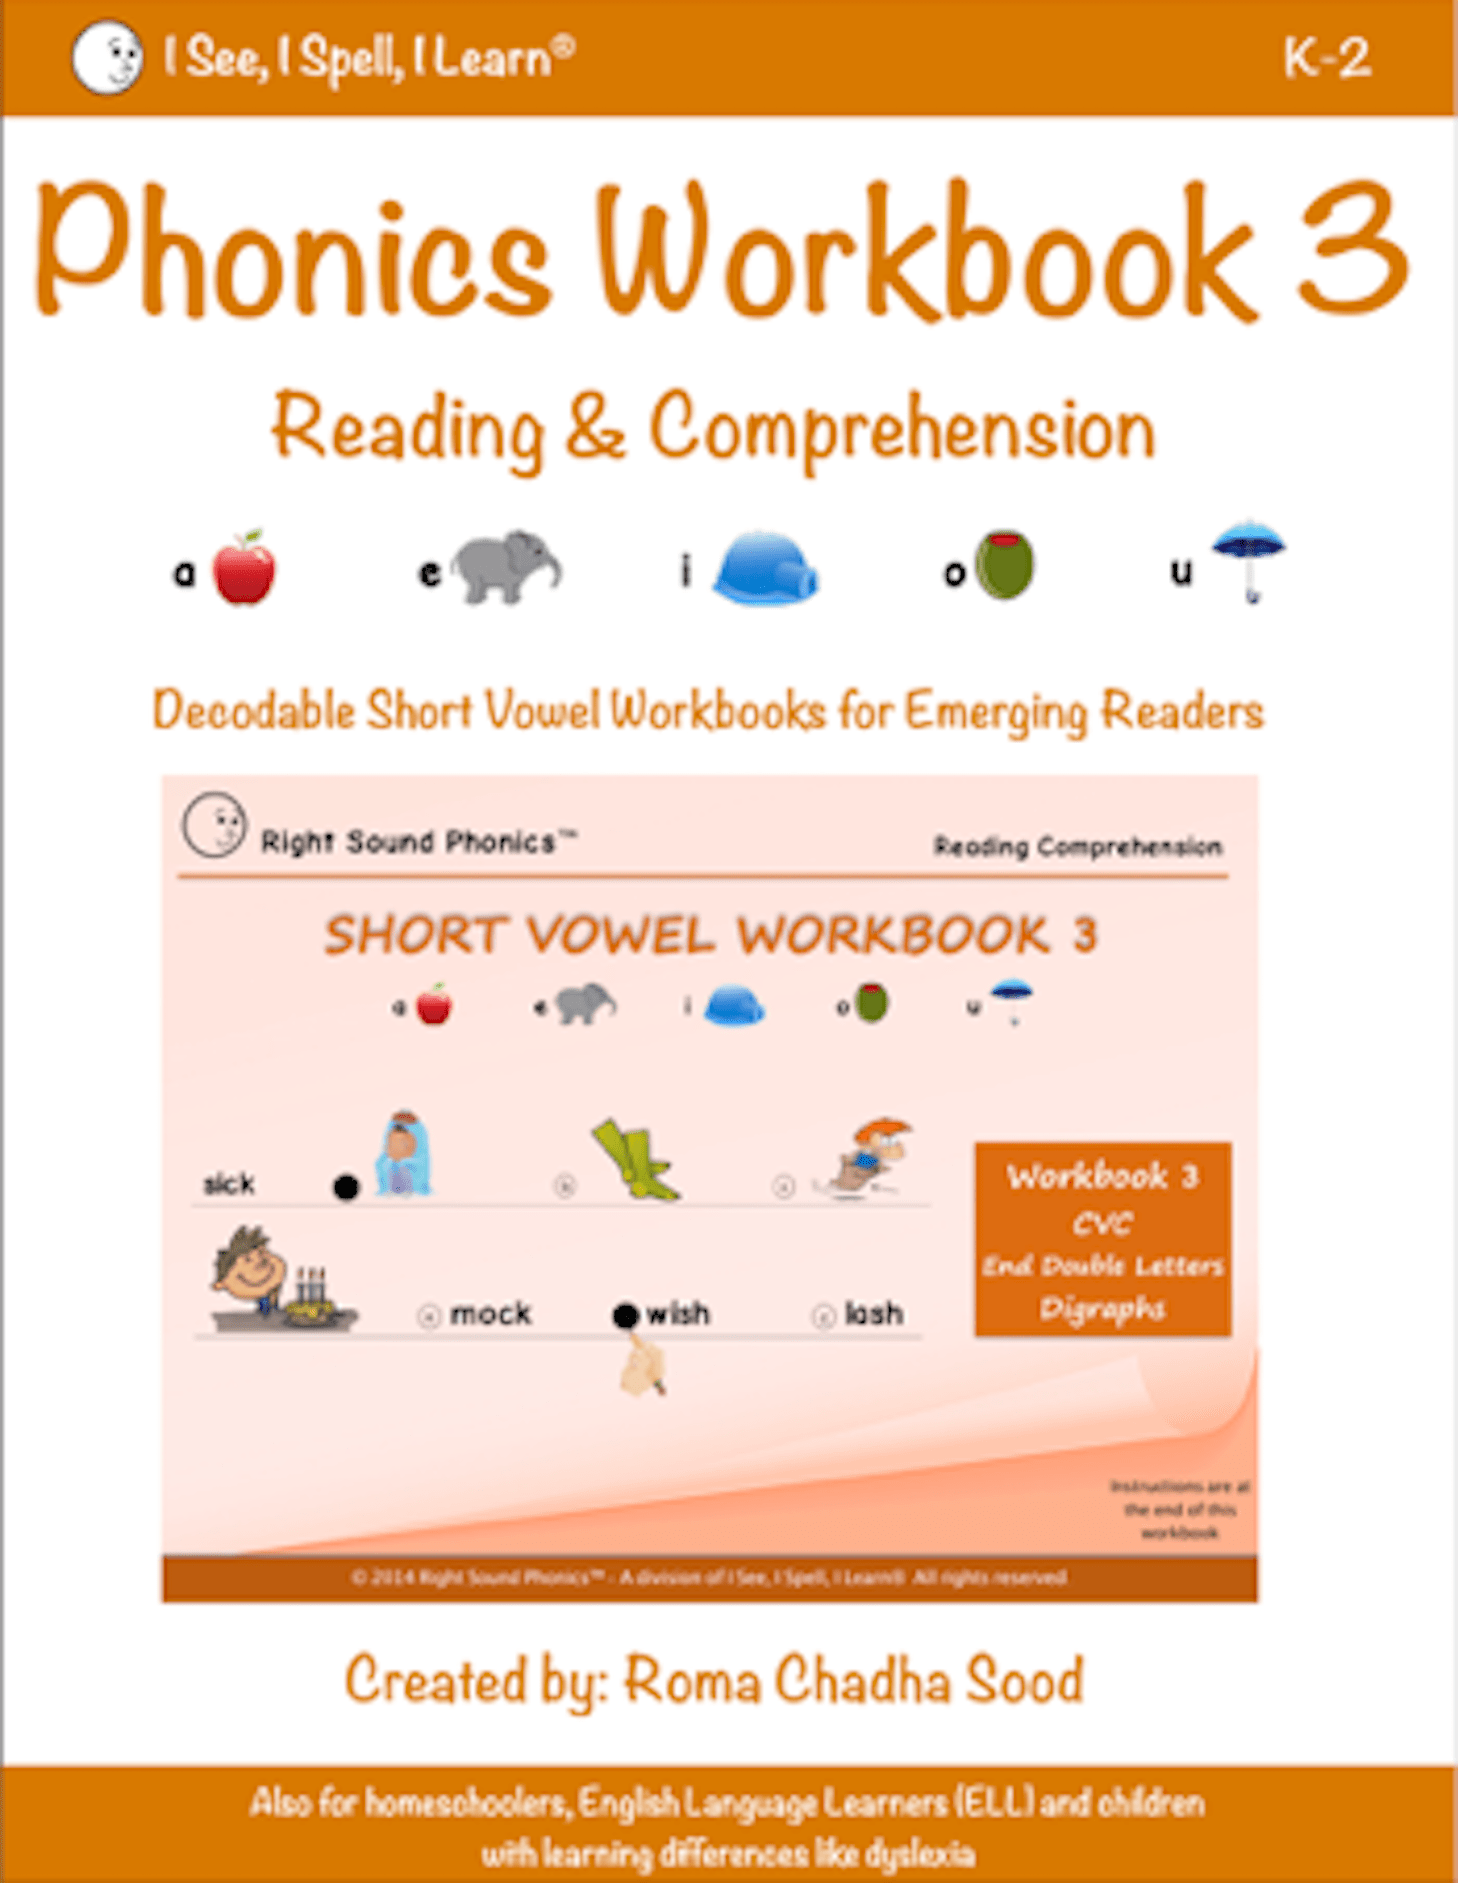 Phonics Amp Short Vowel Eworkbook 3